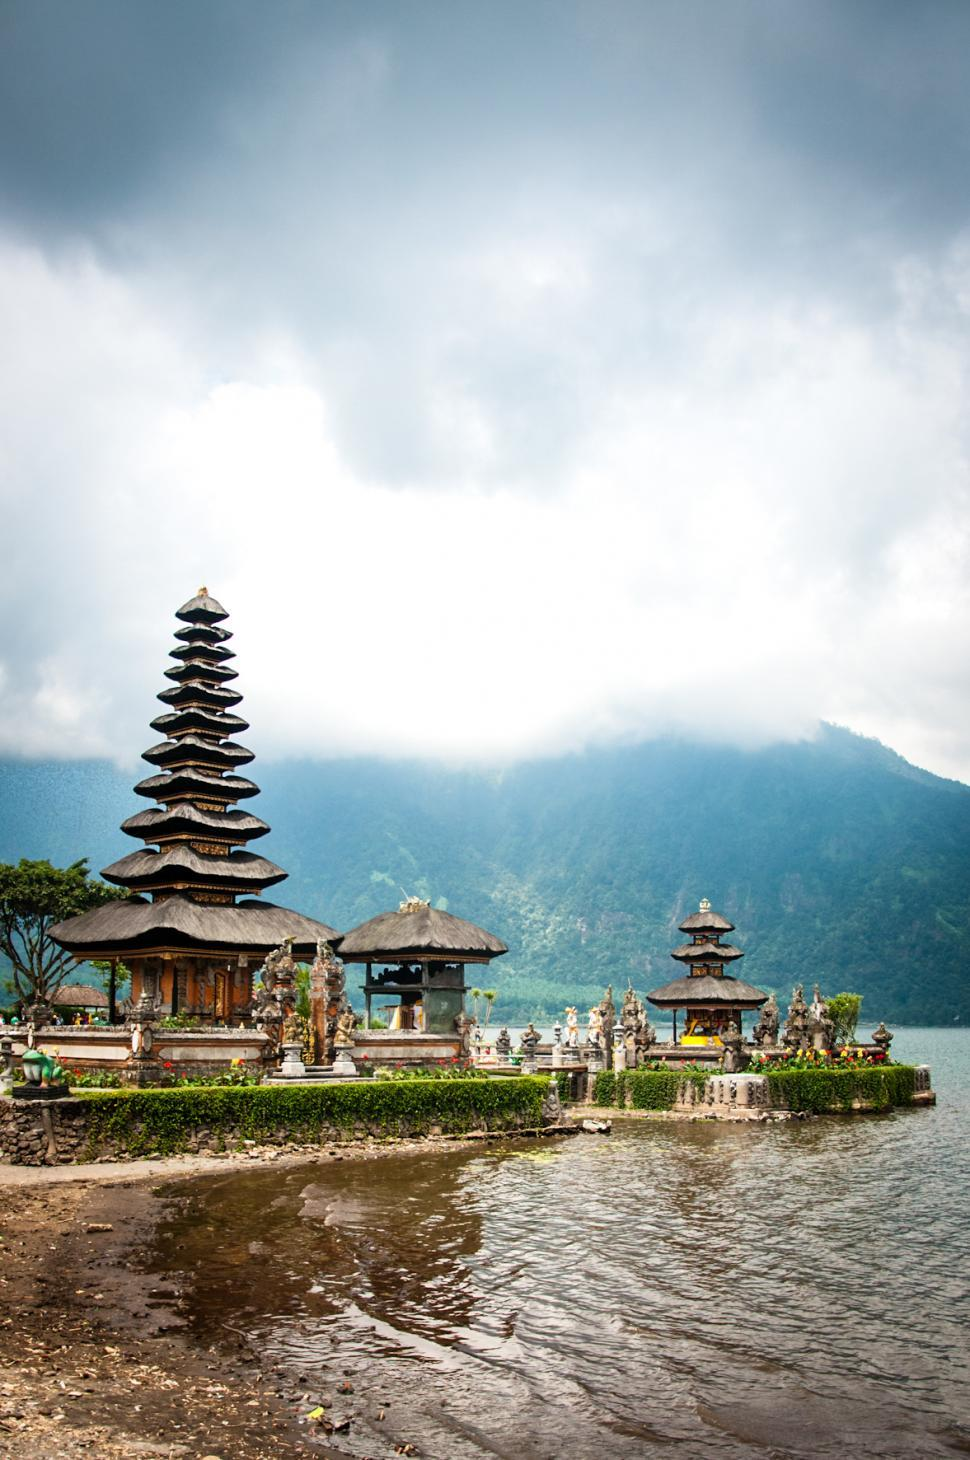 Download Free Stock HD Photo of Pura Ulun Danu temple in bali Online